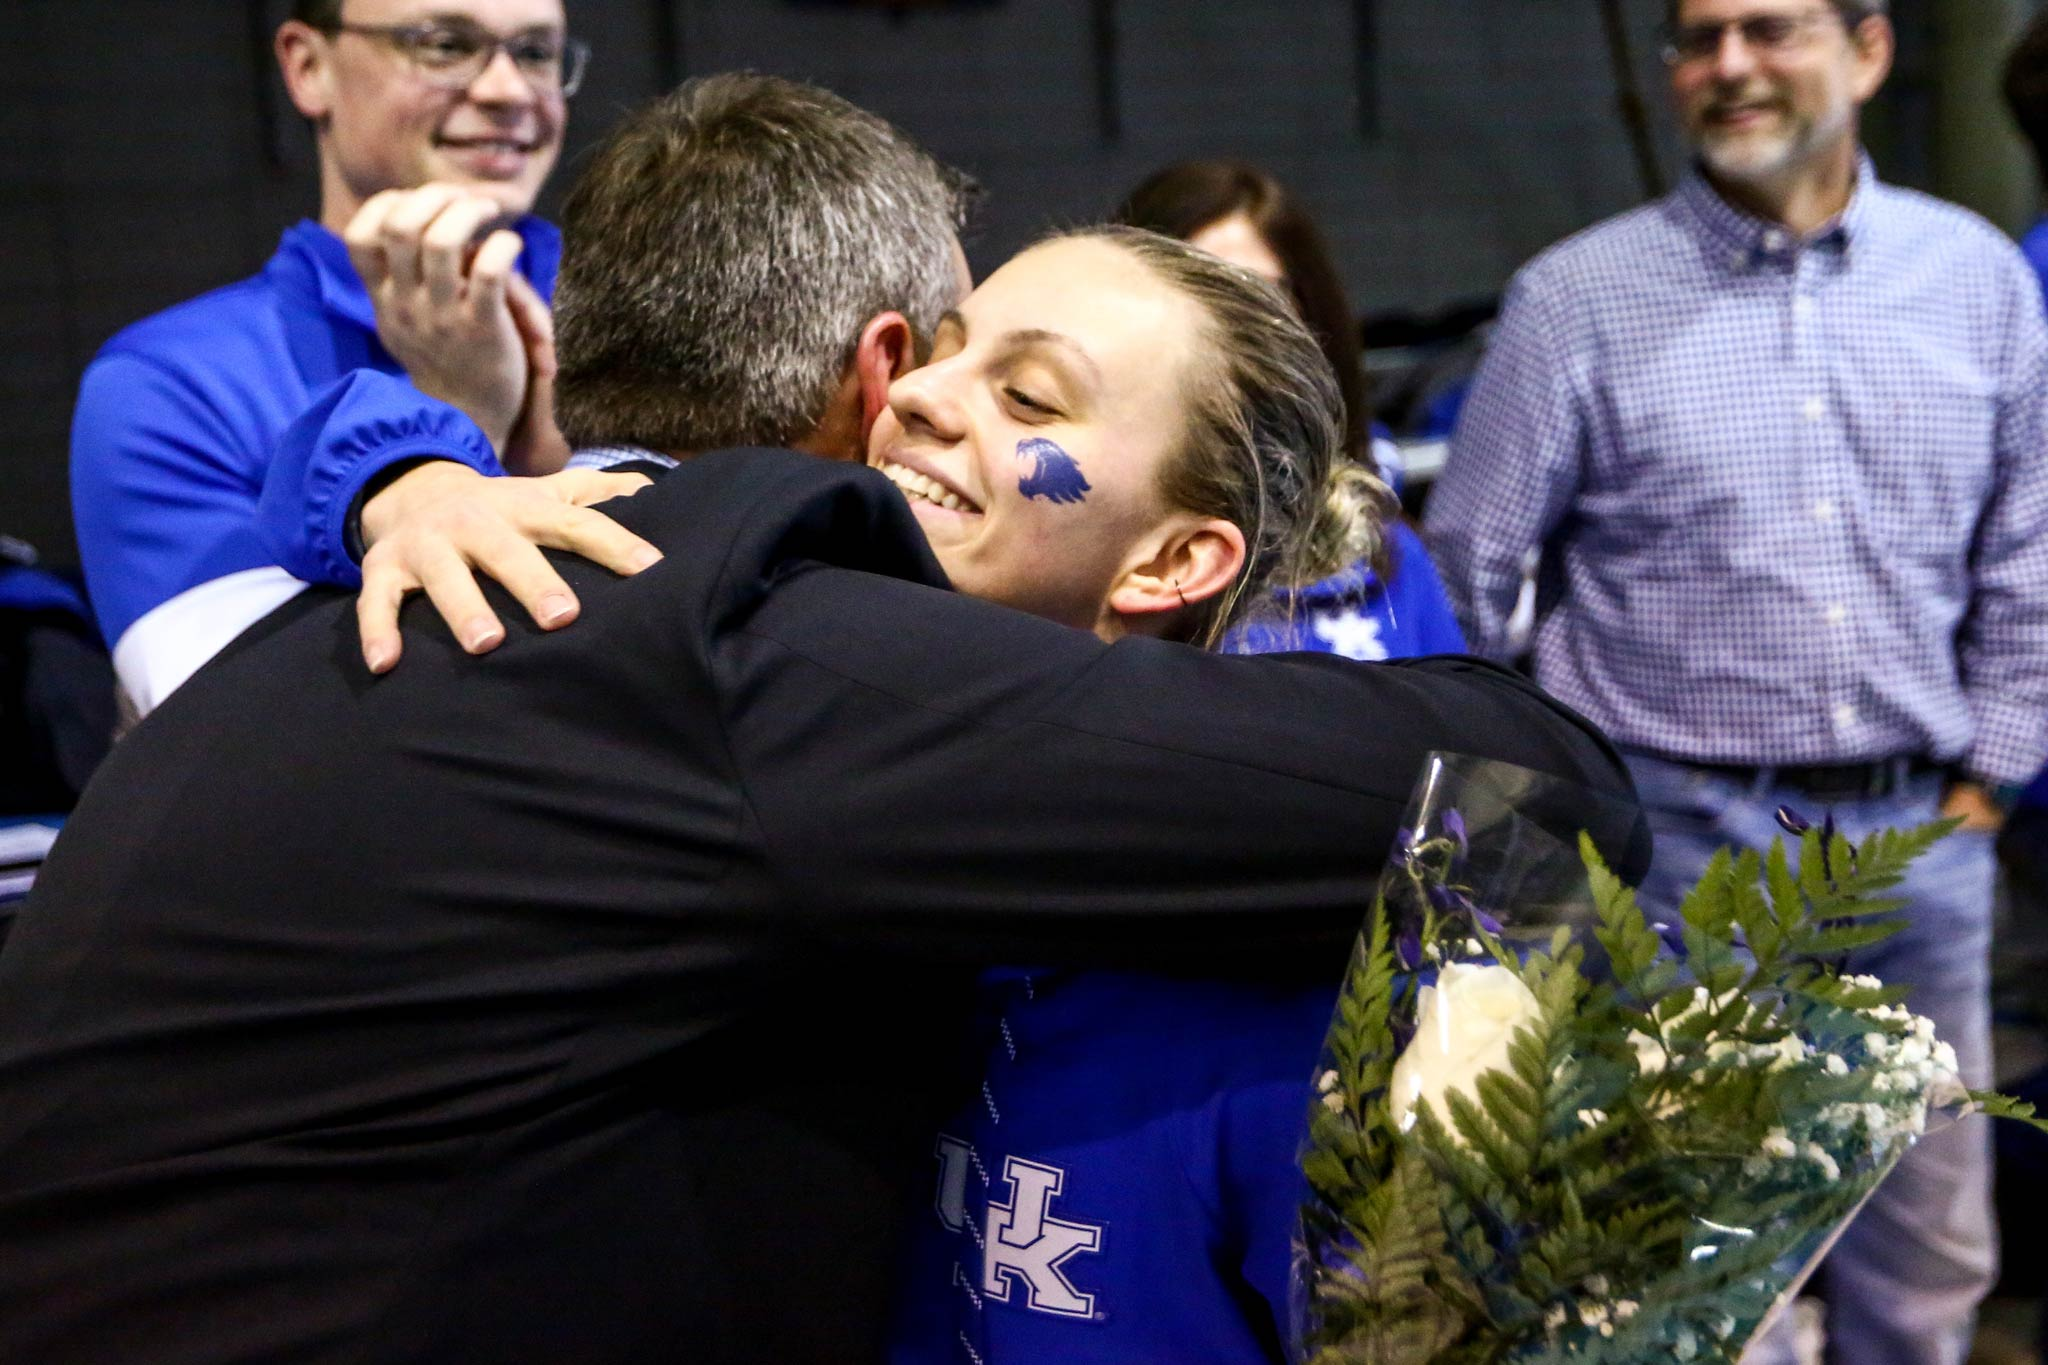 Emma, with a small blue Wildcat head painted on her cheek, hugs a man wearing a suit. She is holding a bouquet of flowers. People in the background are applauding.